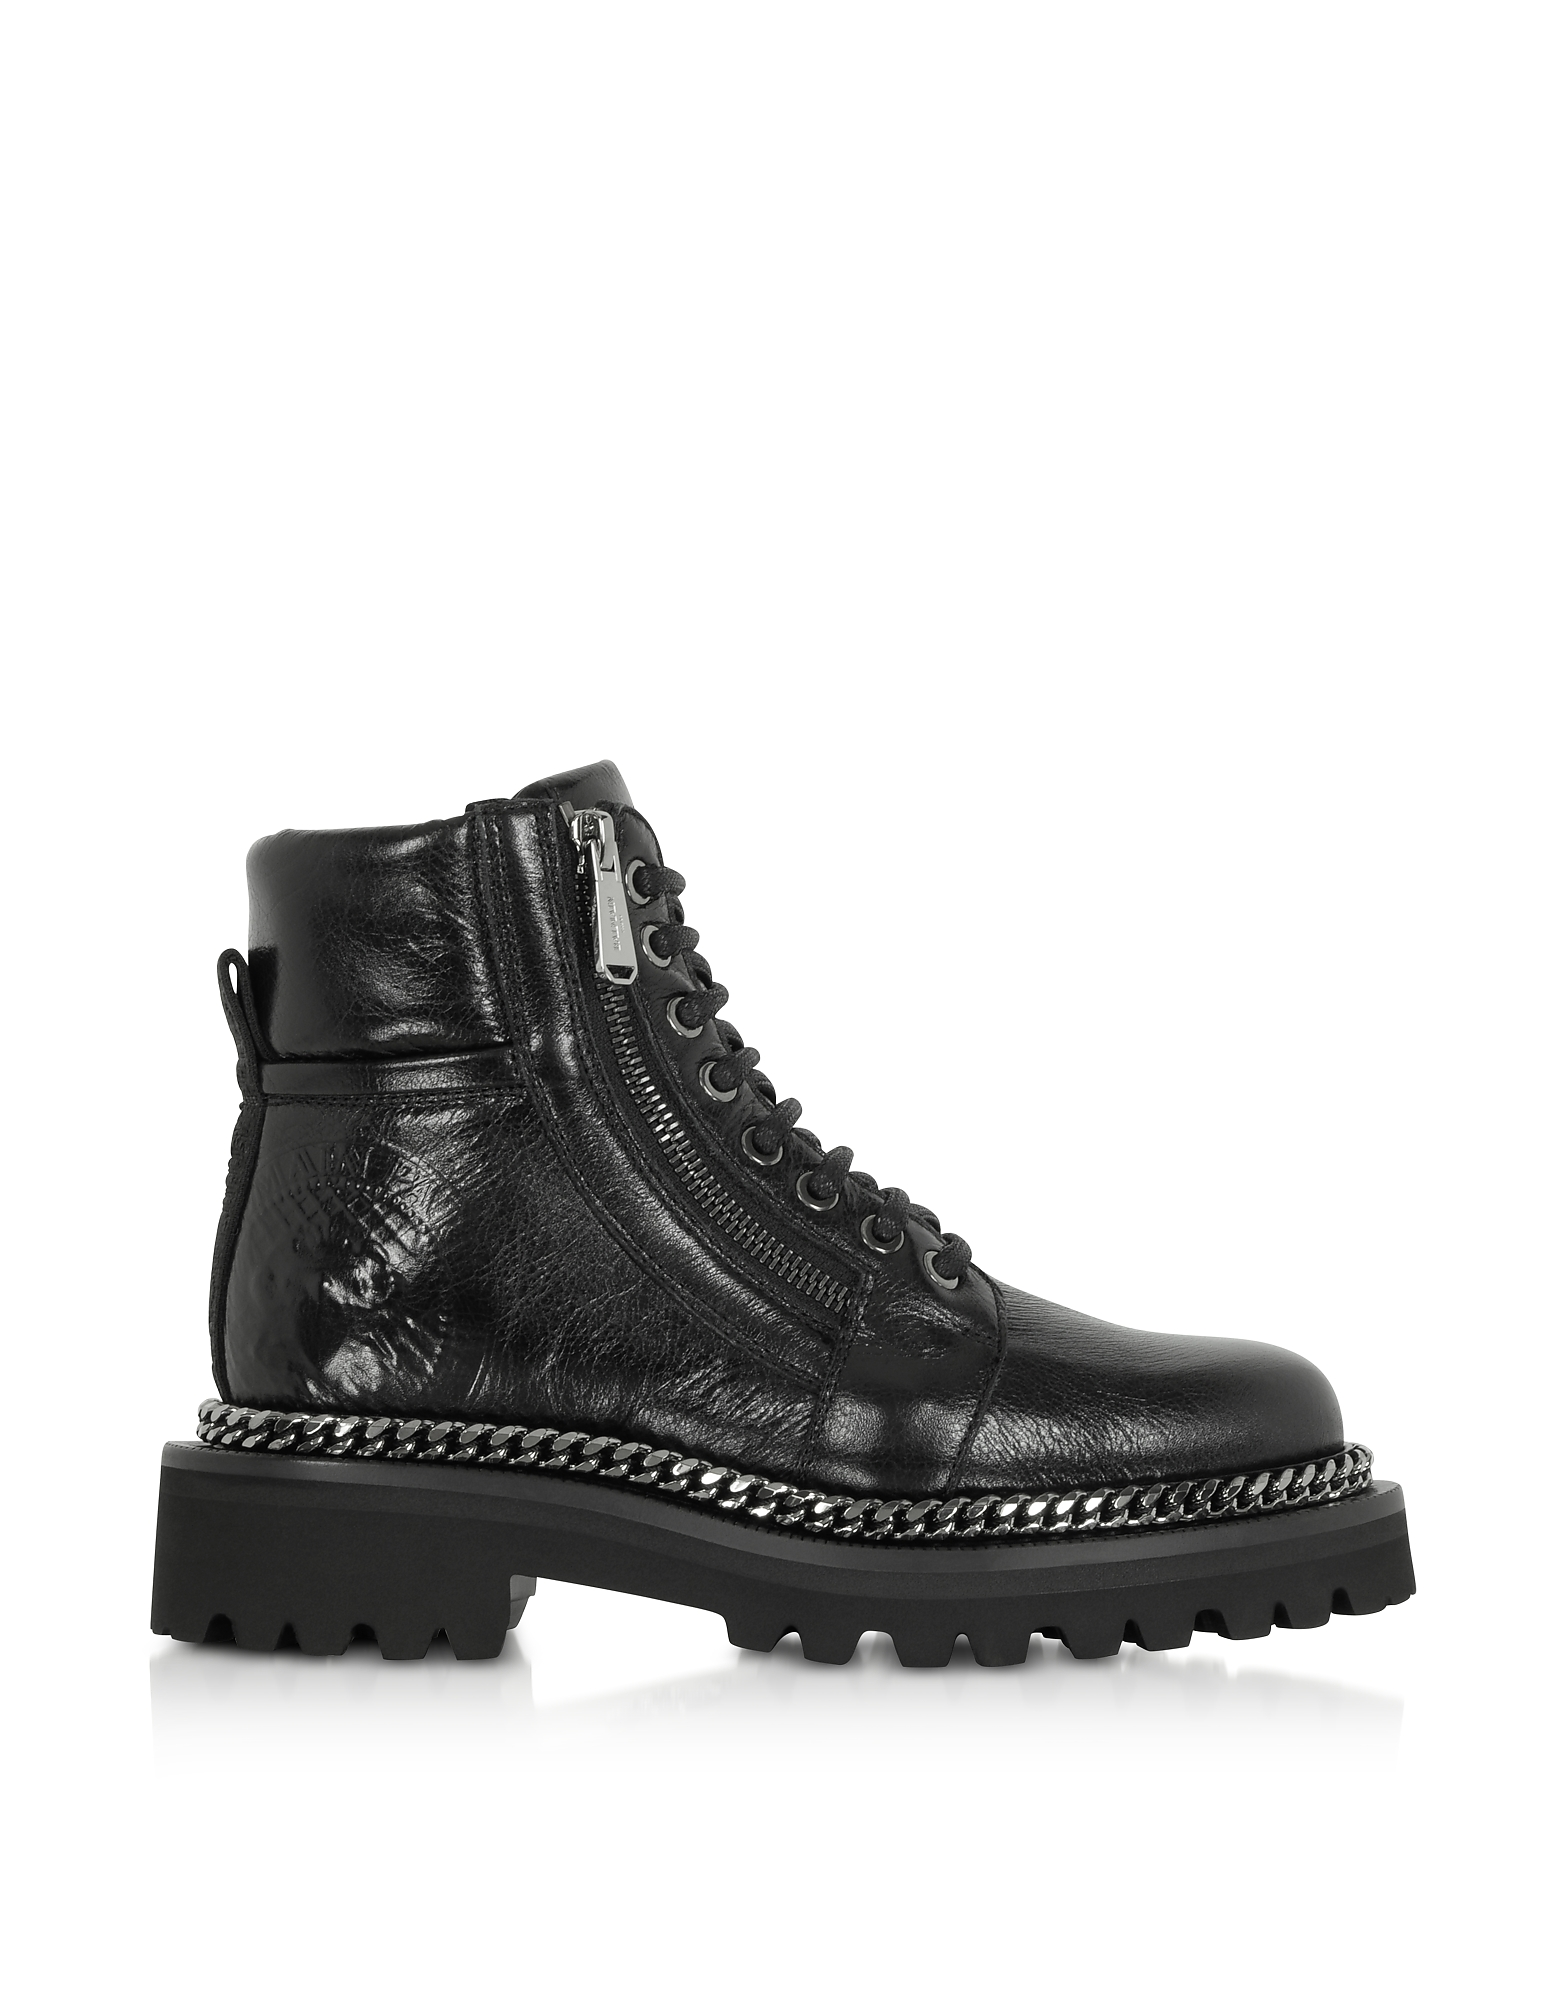 Balmain Shoes, Black Leather Army Boots